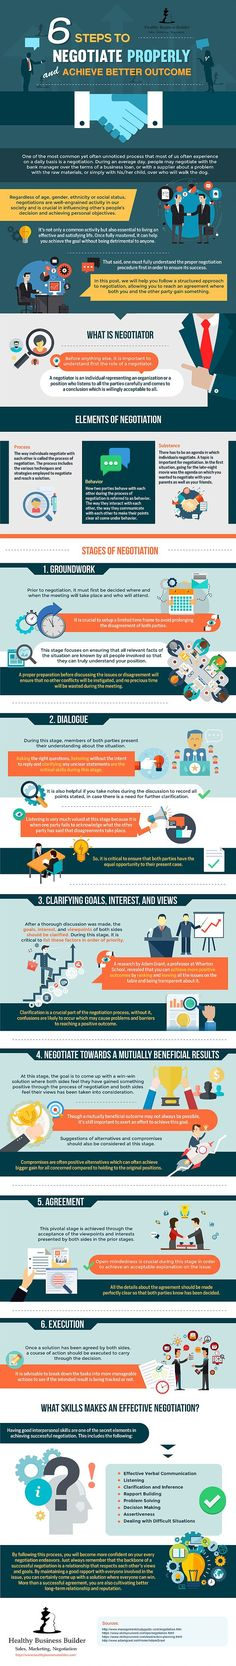 6 Steps to Negotiate Properly and Achieve Better Outcome #Infographic #Business